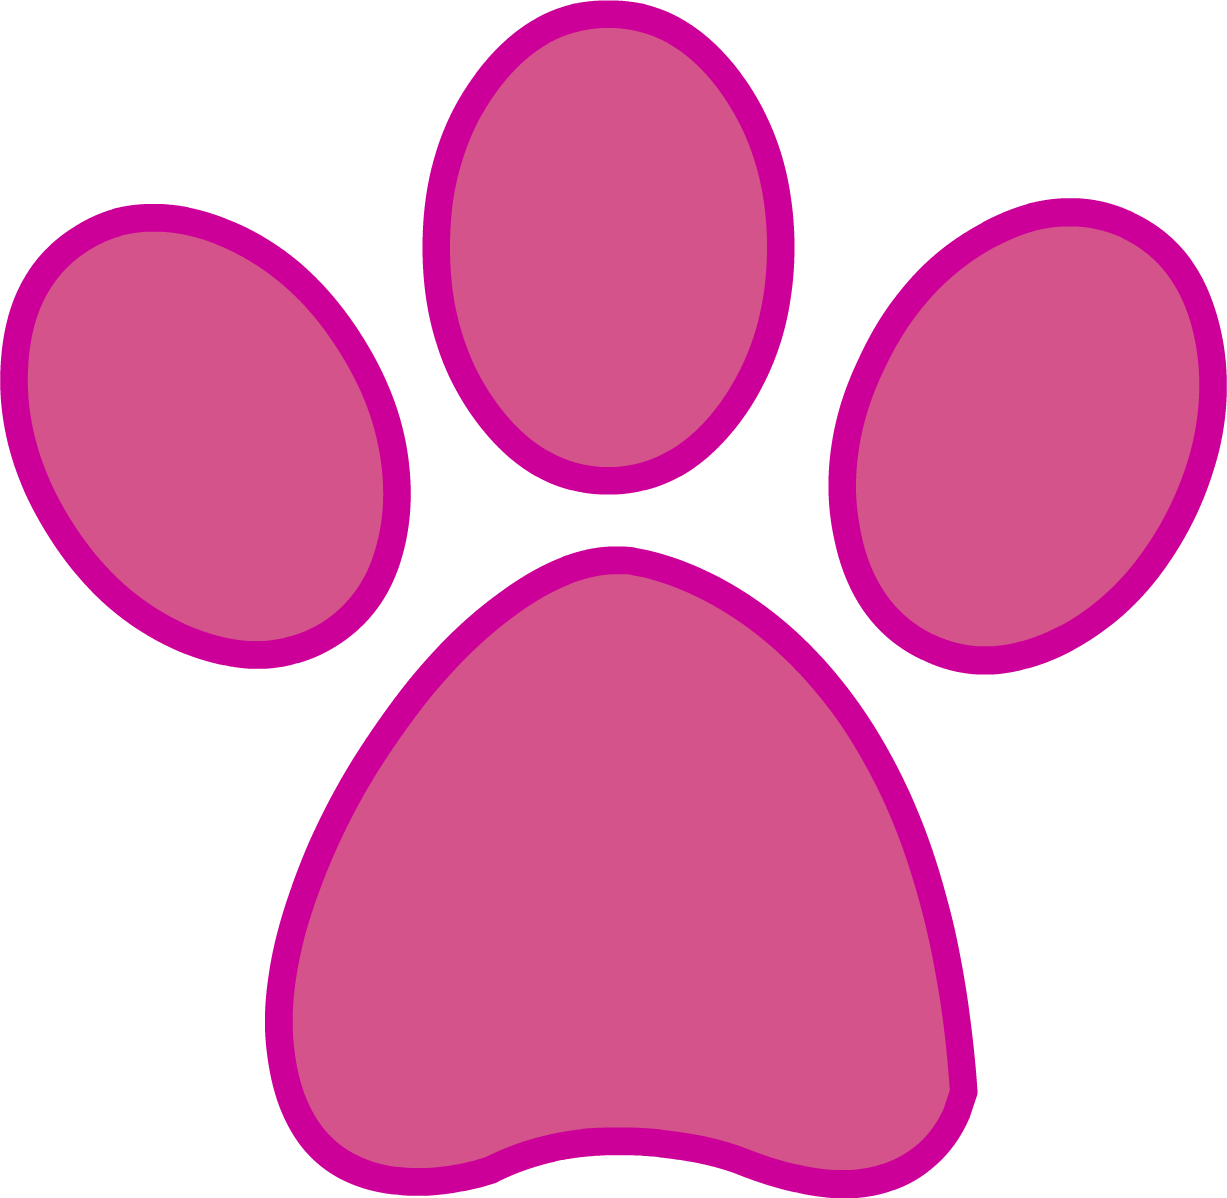 Panther print png. Pink paw commission by